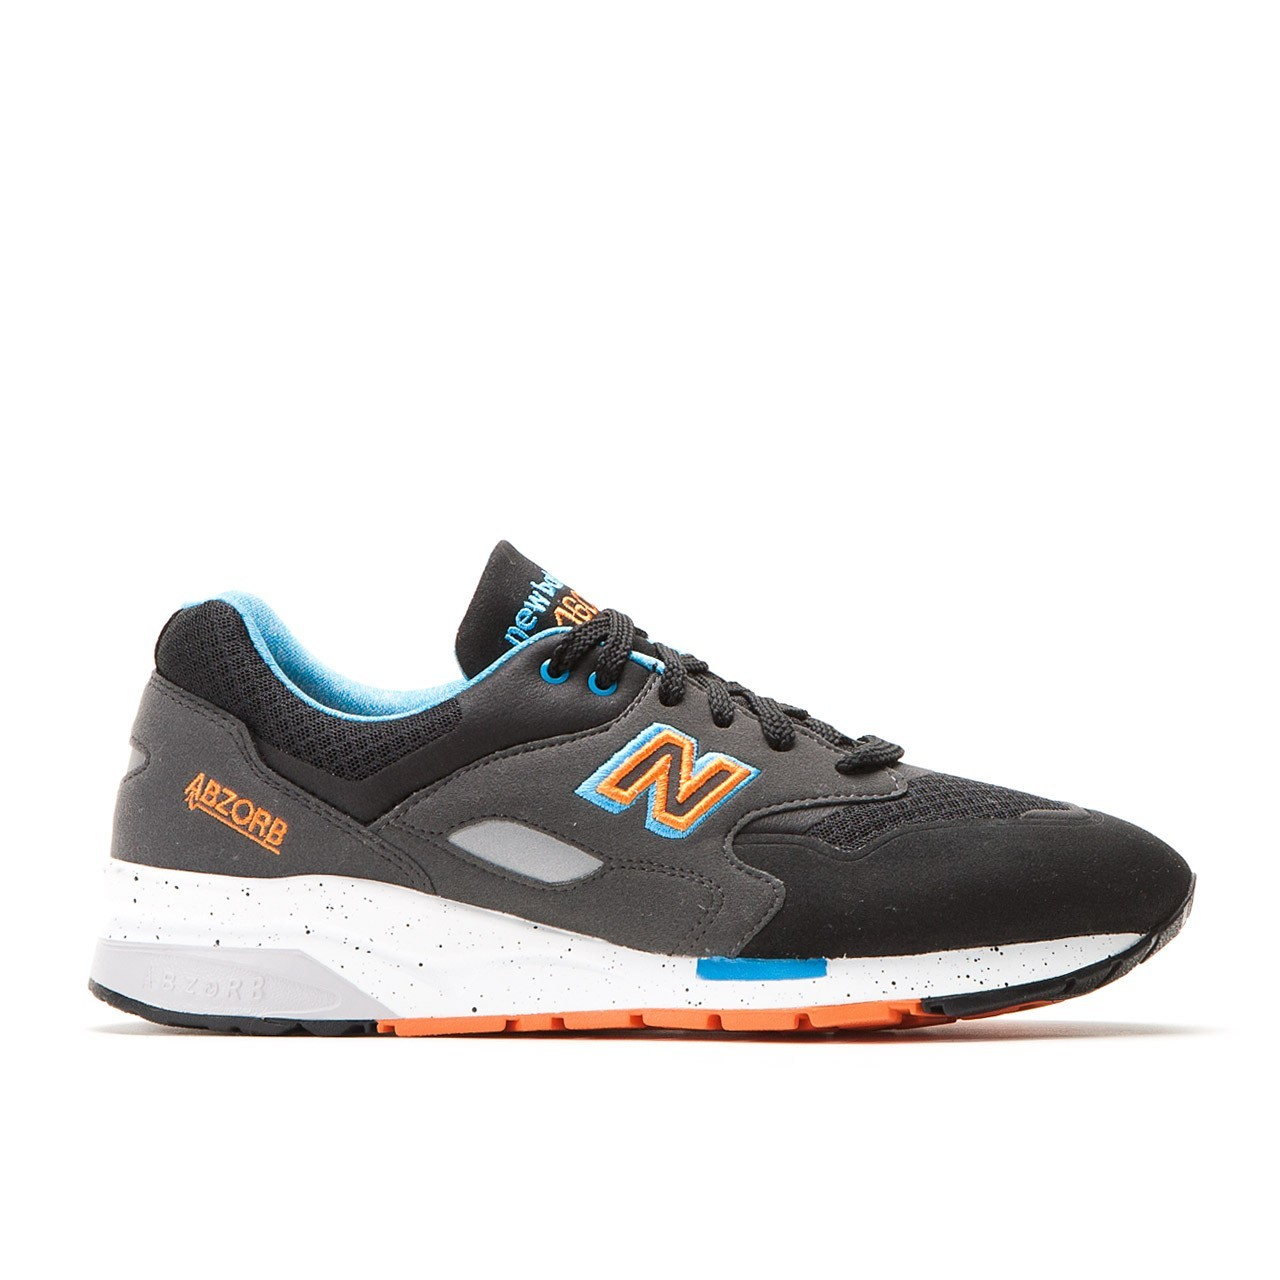 New Balance CM 1600 KO Trainers For Men Black Blue Orange White